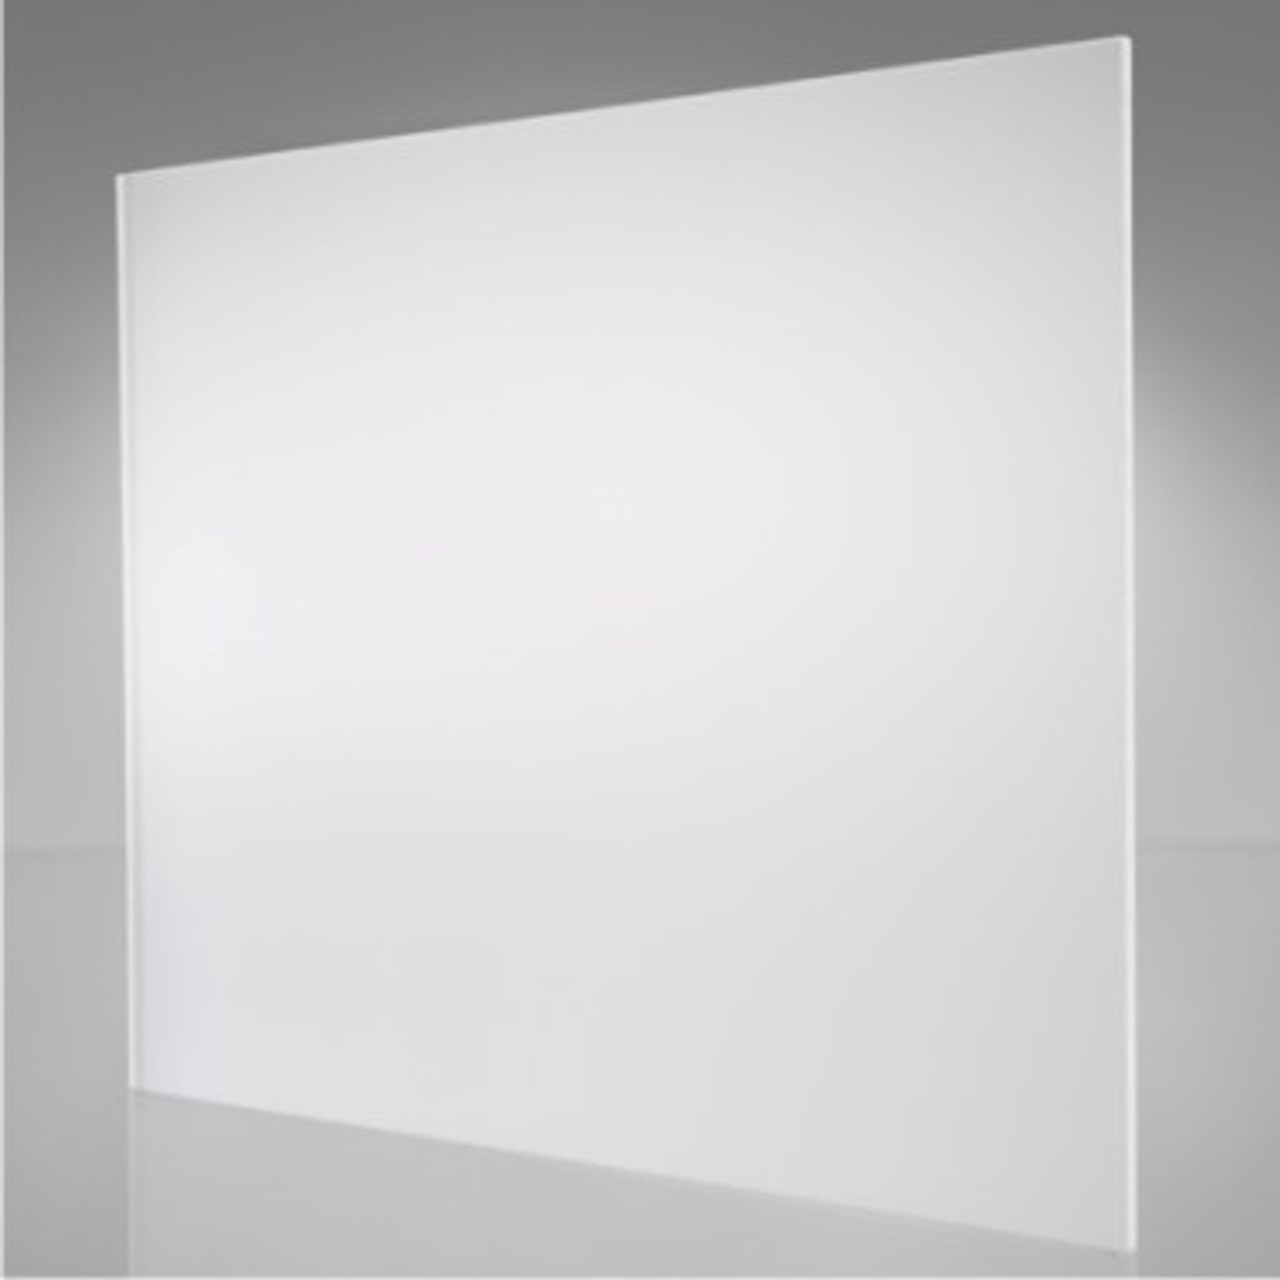 "4' x 8' x 1/4"" Translucent White Acrylic. P95 ( 1 side matte )"